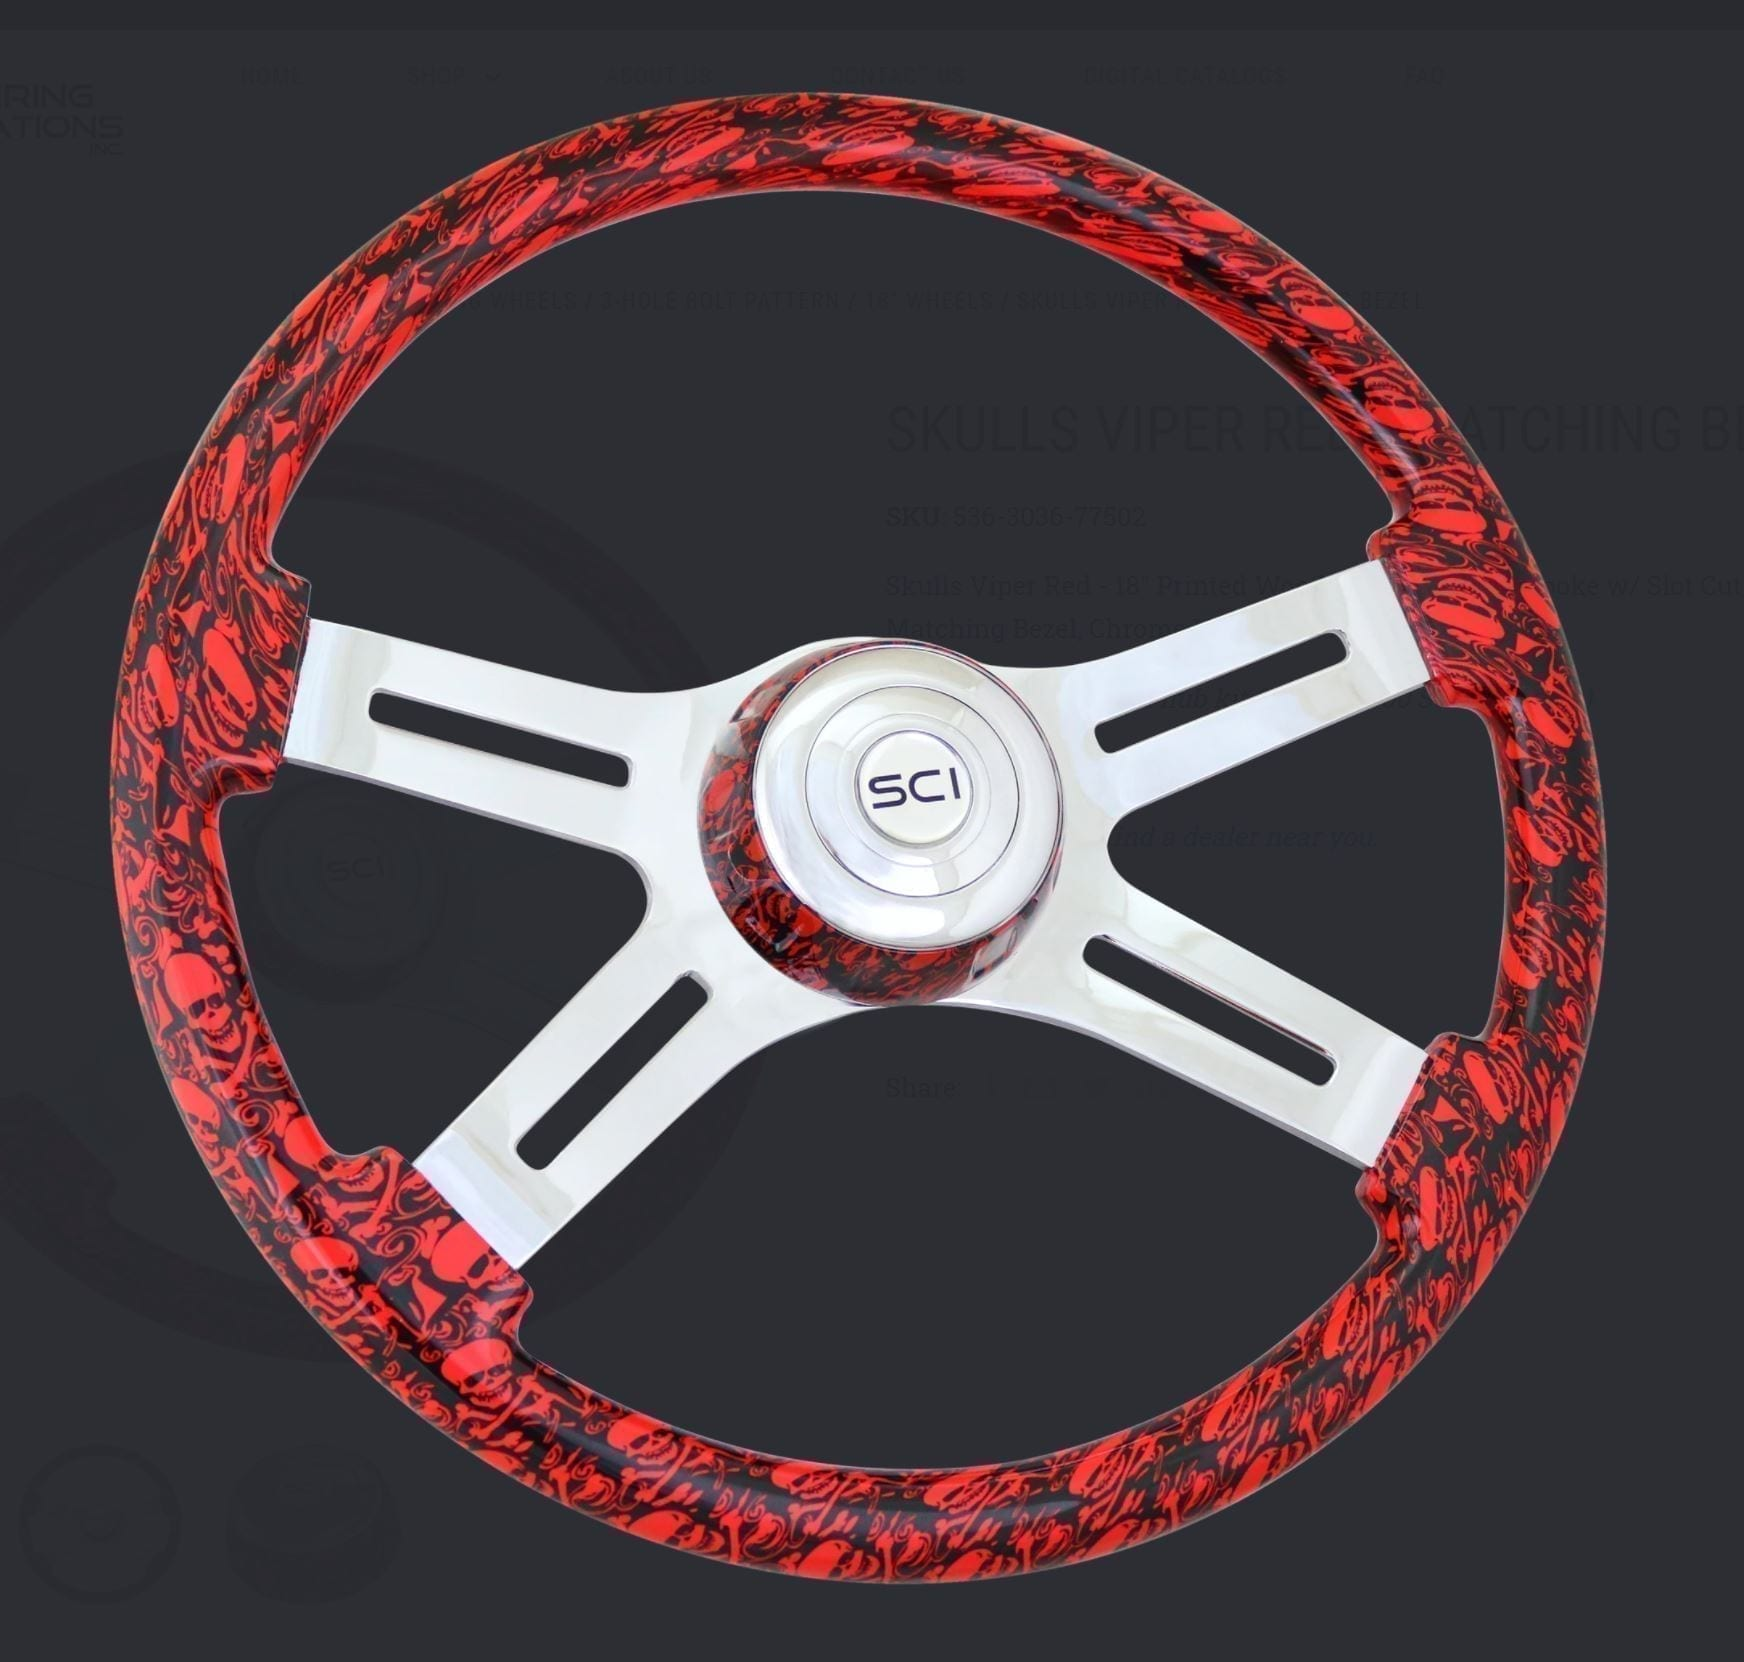 Viper Red Steering Wheels with Skulls